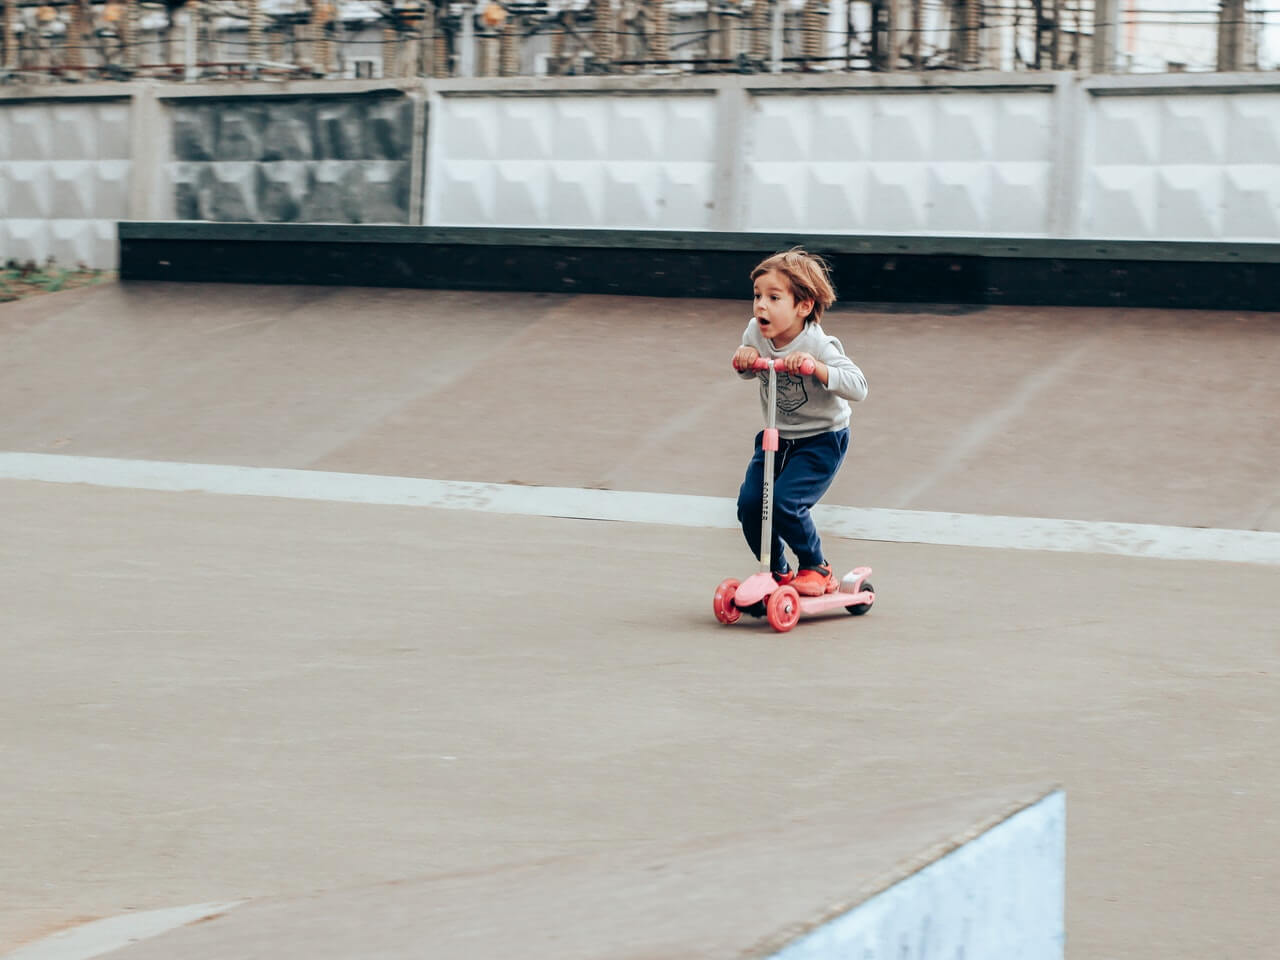 Kid on 3 wheel electric scooter